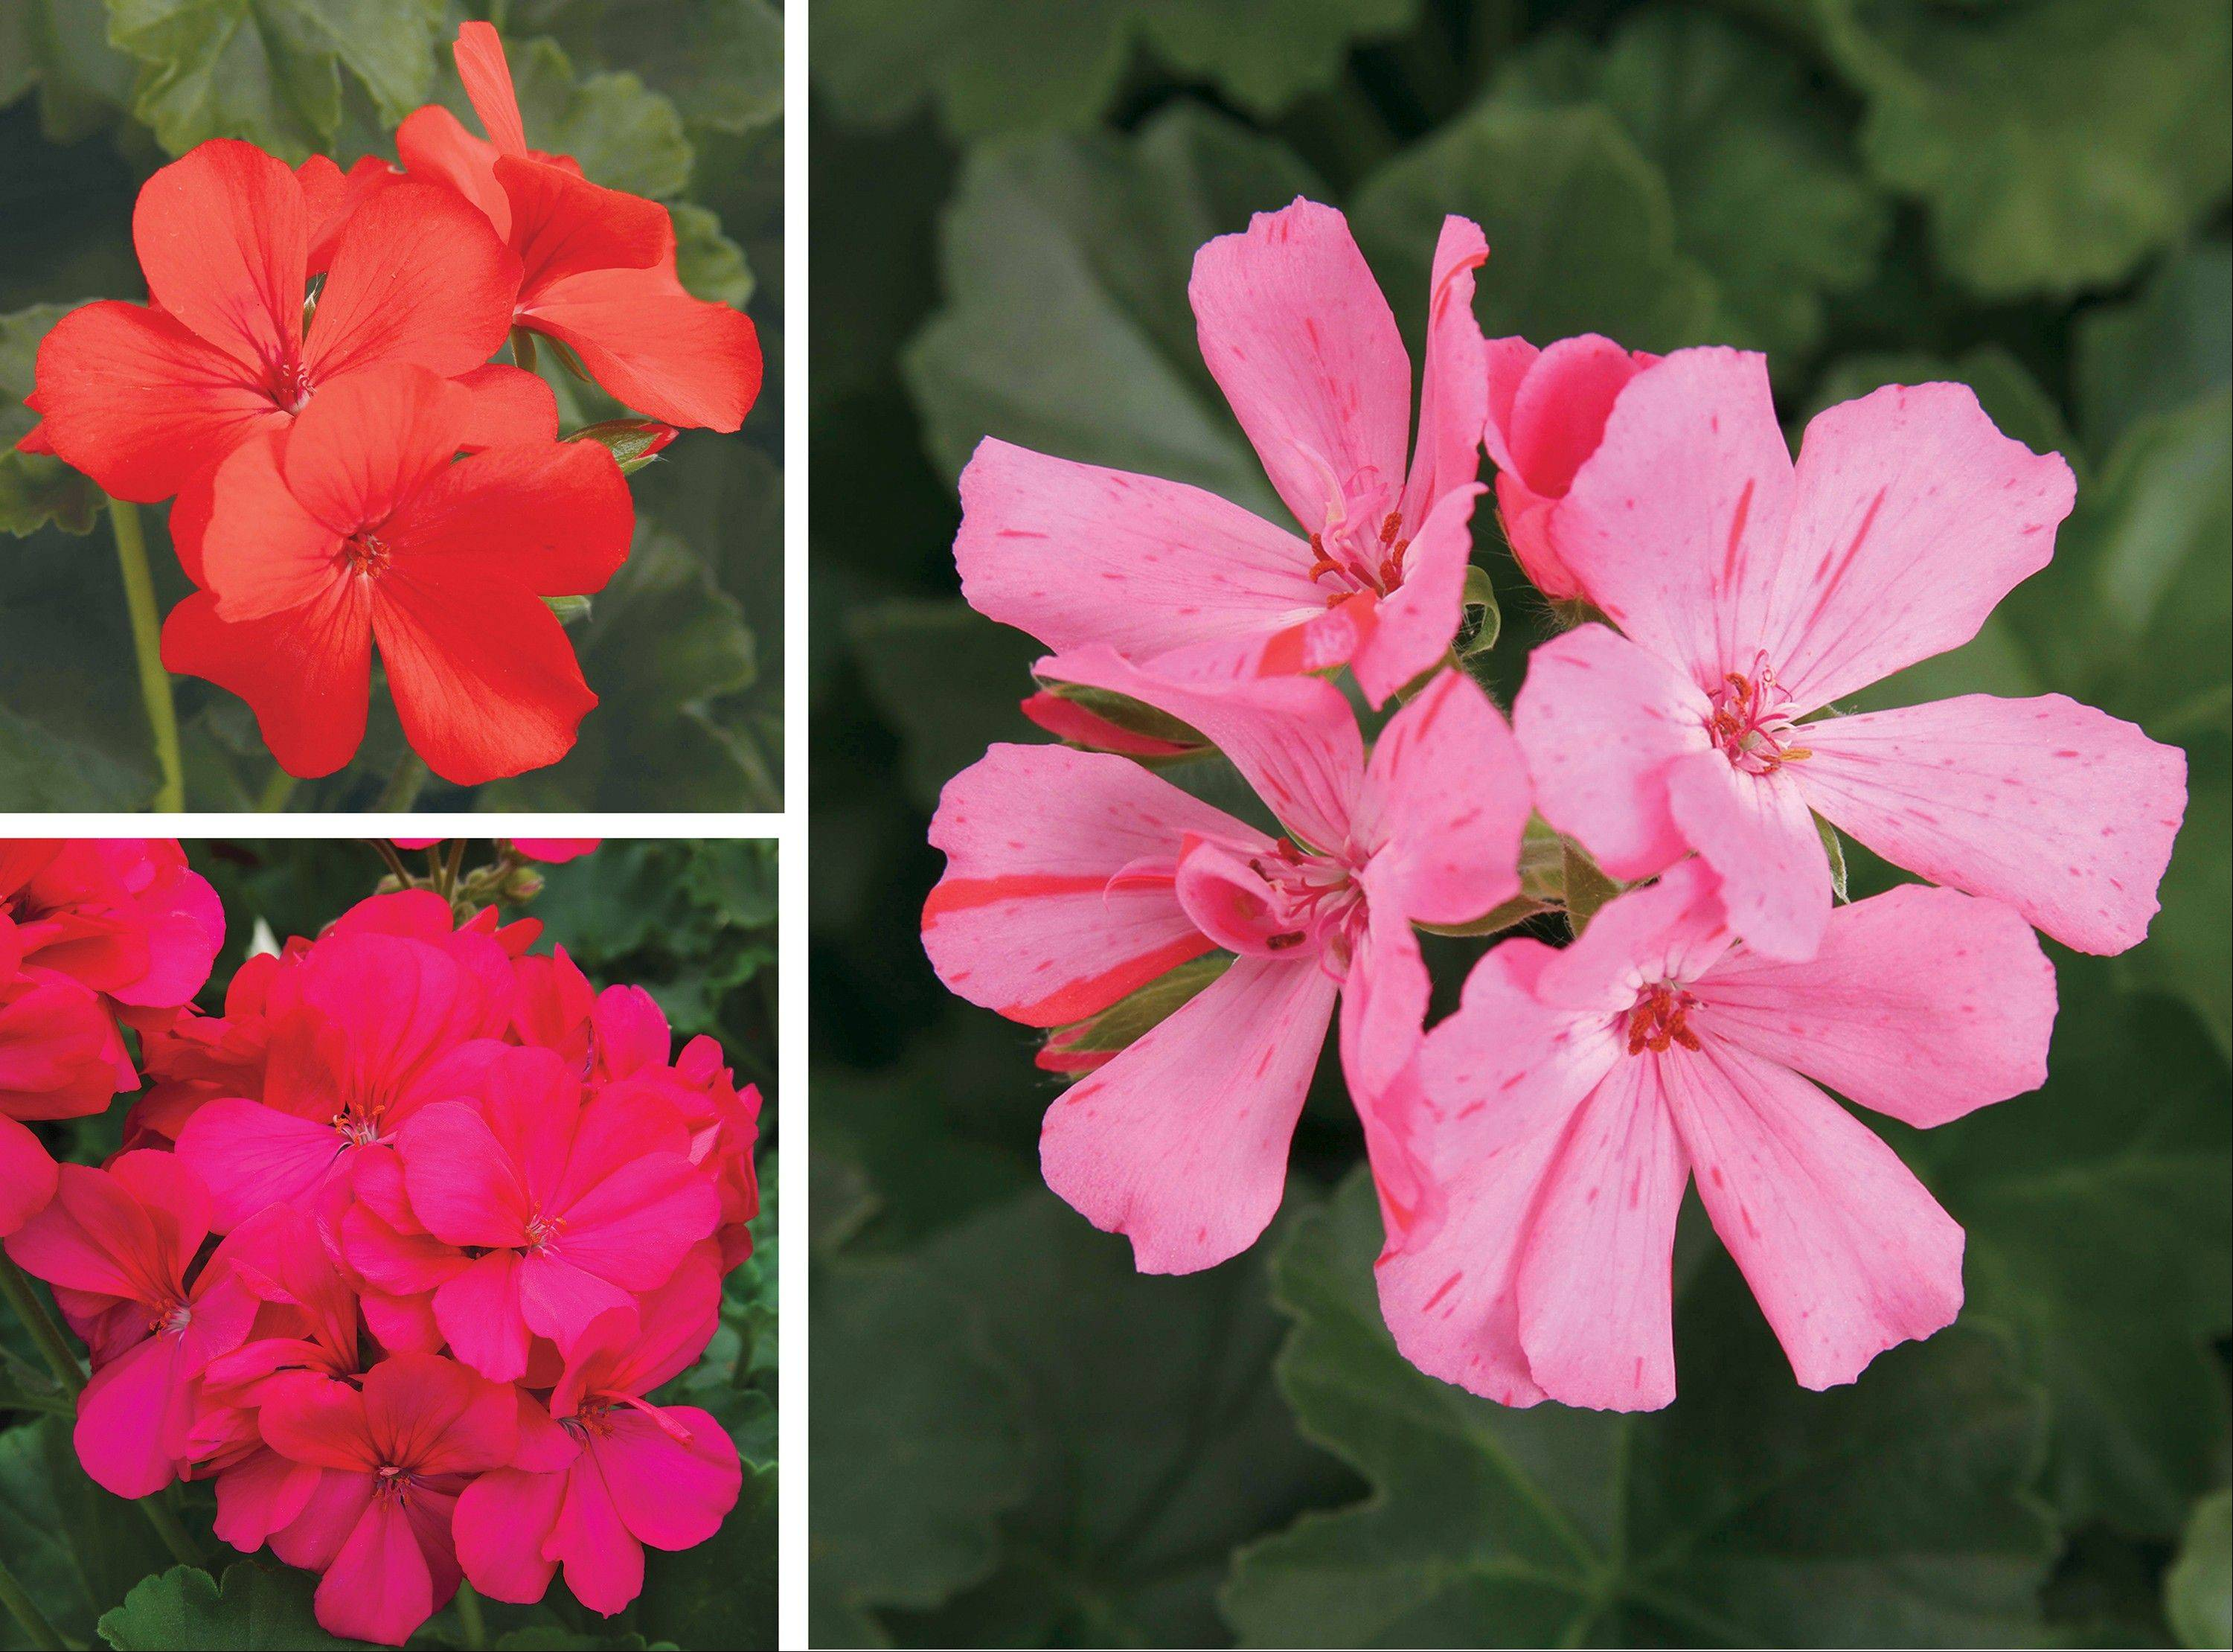 There are new reasons to like geraniums -- new colors, forms and better blooms. New geranium varieties for next year from Proven Winners: Timeless Orange (top left); Boldly Hot Pint (bottom left); and Timeless Pink (right).